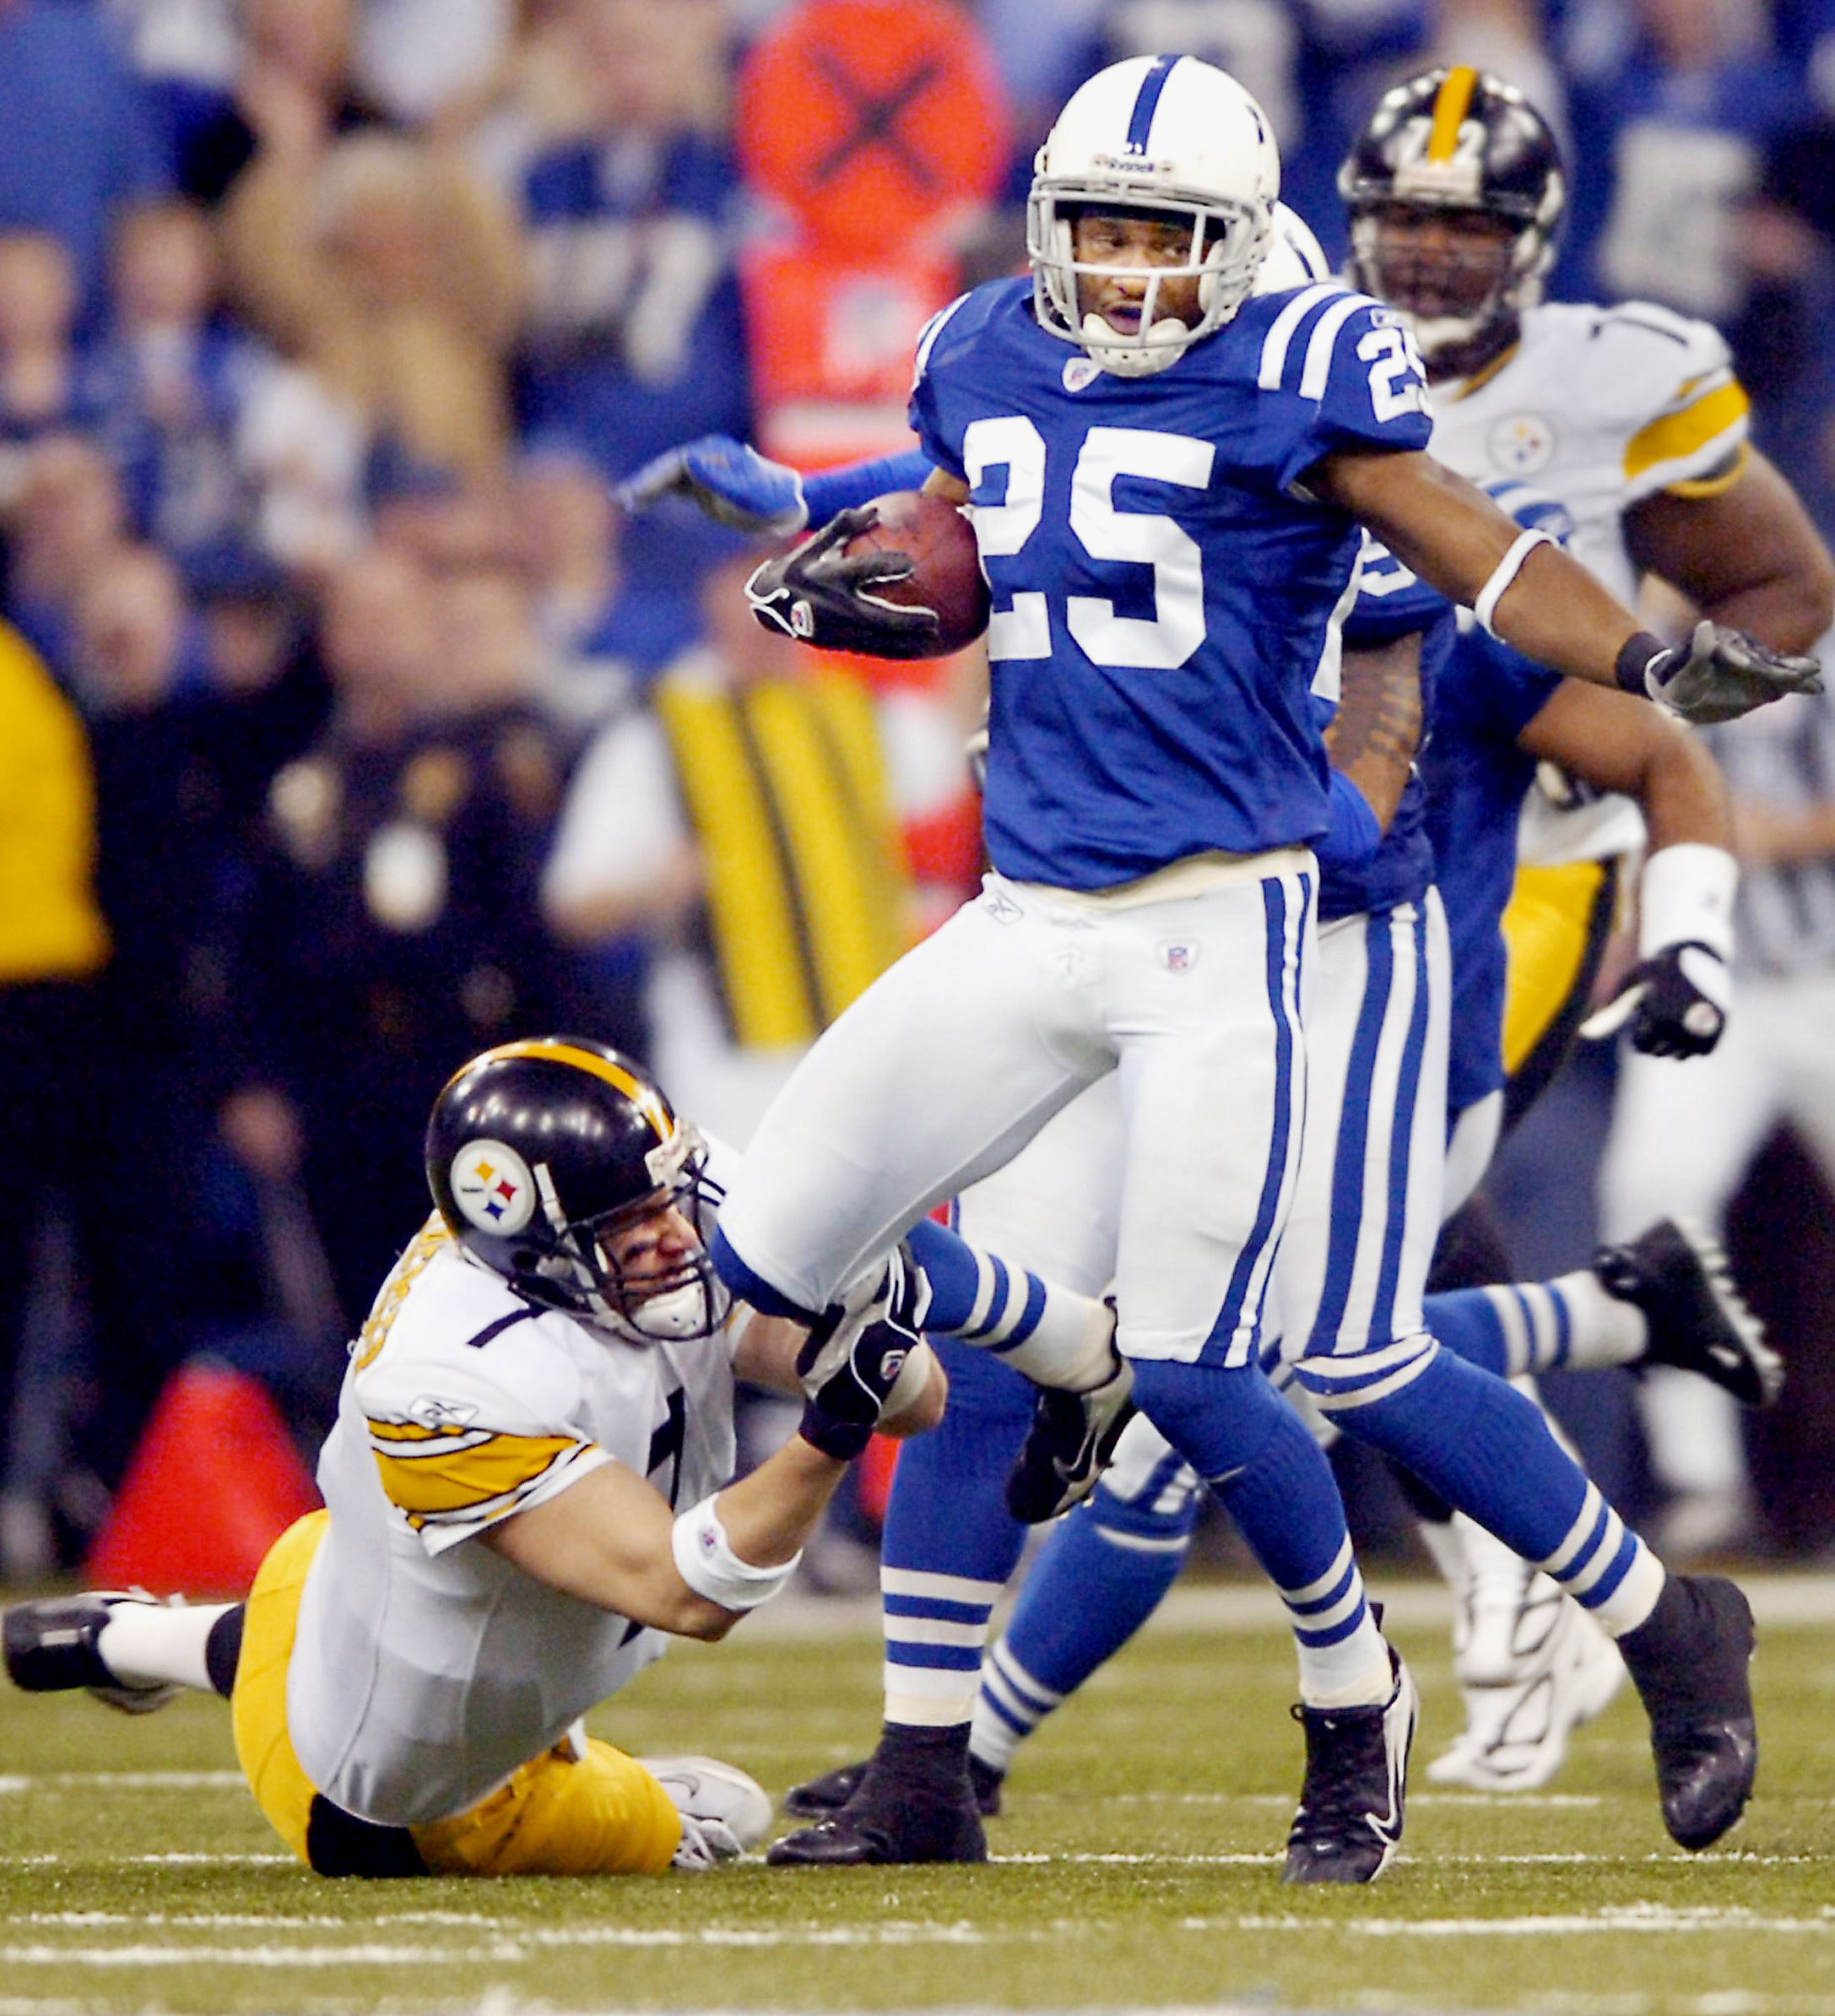 SteelersColts0111b-6 Steelers quarterback Ben Roethlisberger makes the saving tackle on Colts' Nick Harper after a Jerome Bettis fumble late in the fourth quarter in January 2006 in Indianapolis. The Steelers defeated the Colts 21-18 and eventually mar